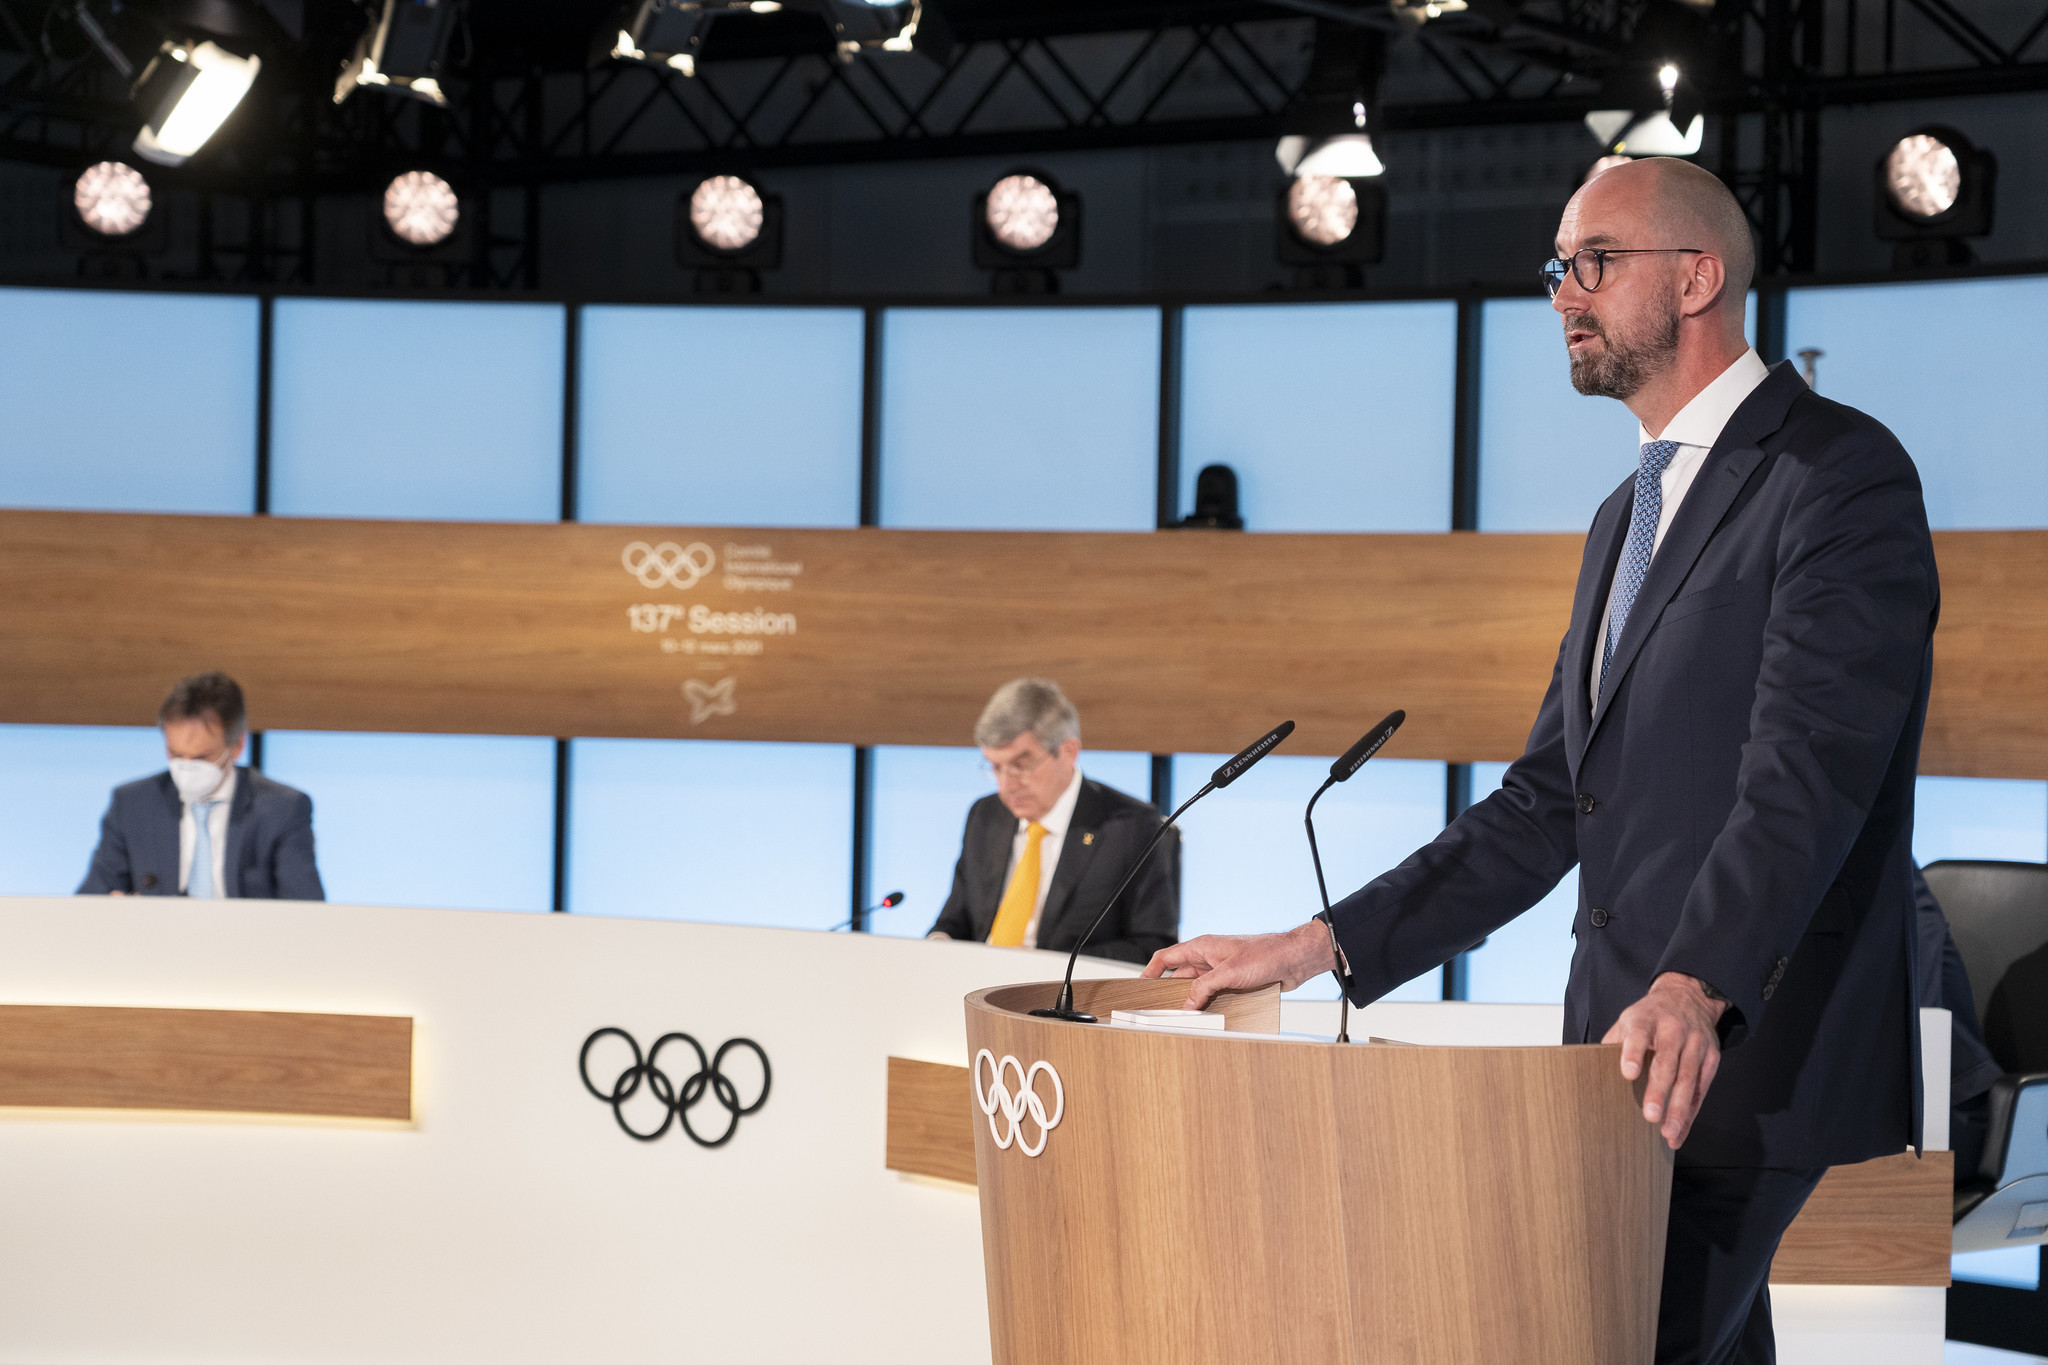 An update was provided on the Refugee Olympic Team prior to Tokyo 2020 ©IOC